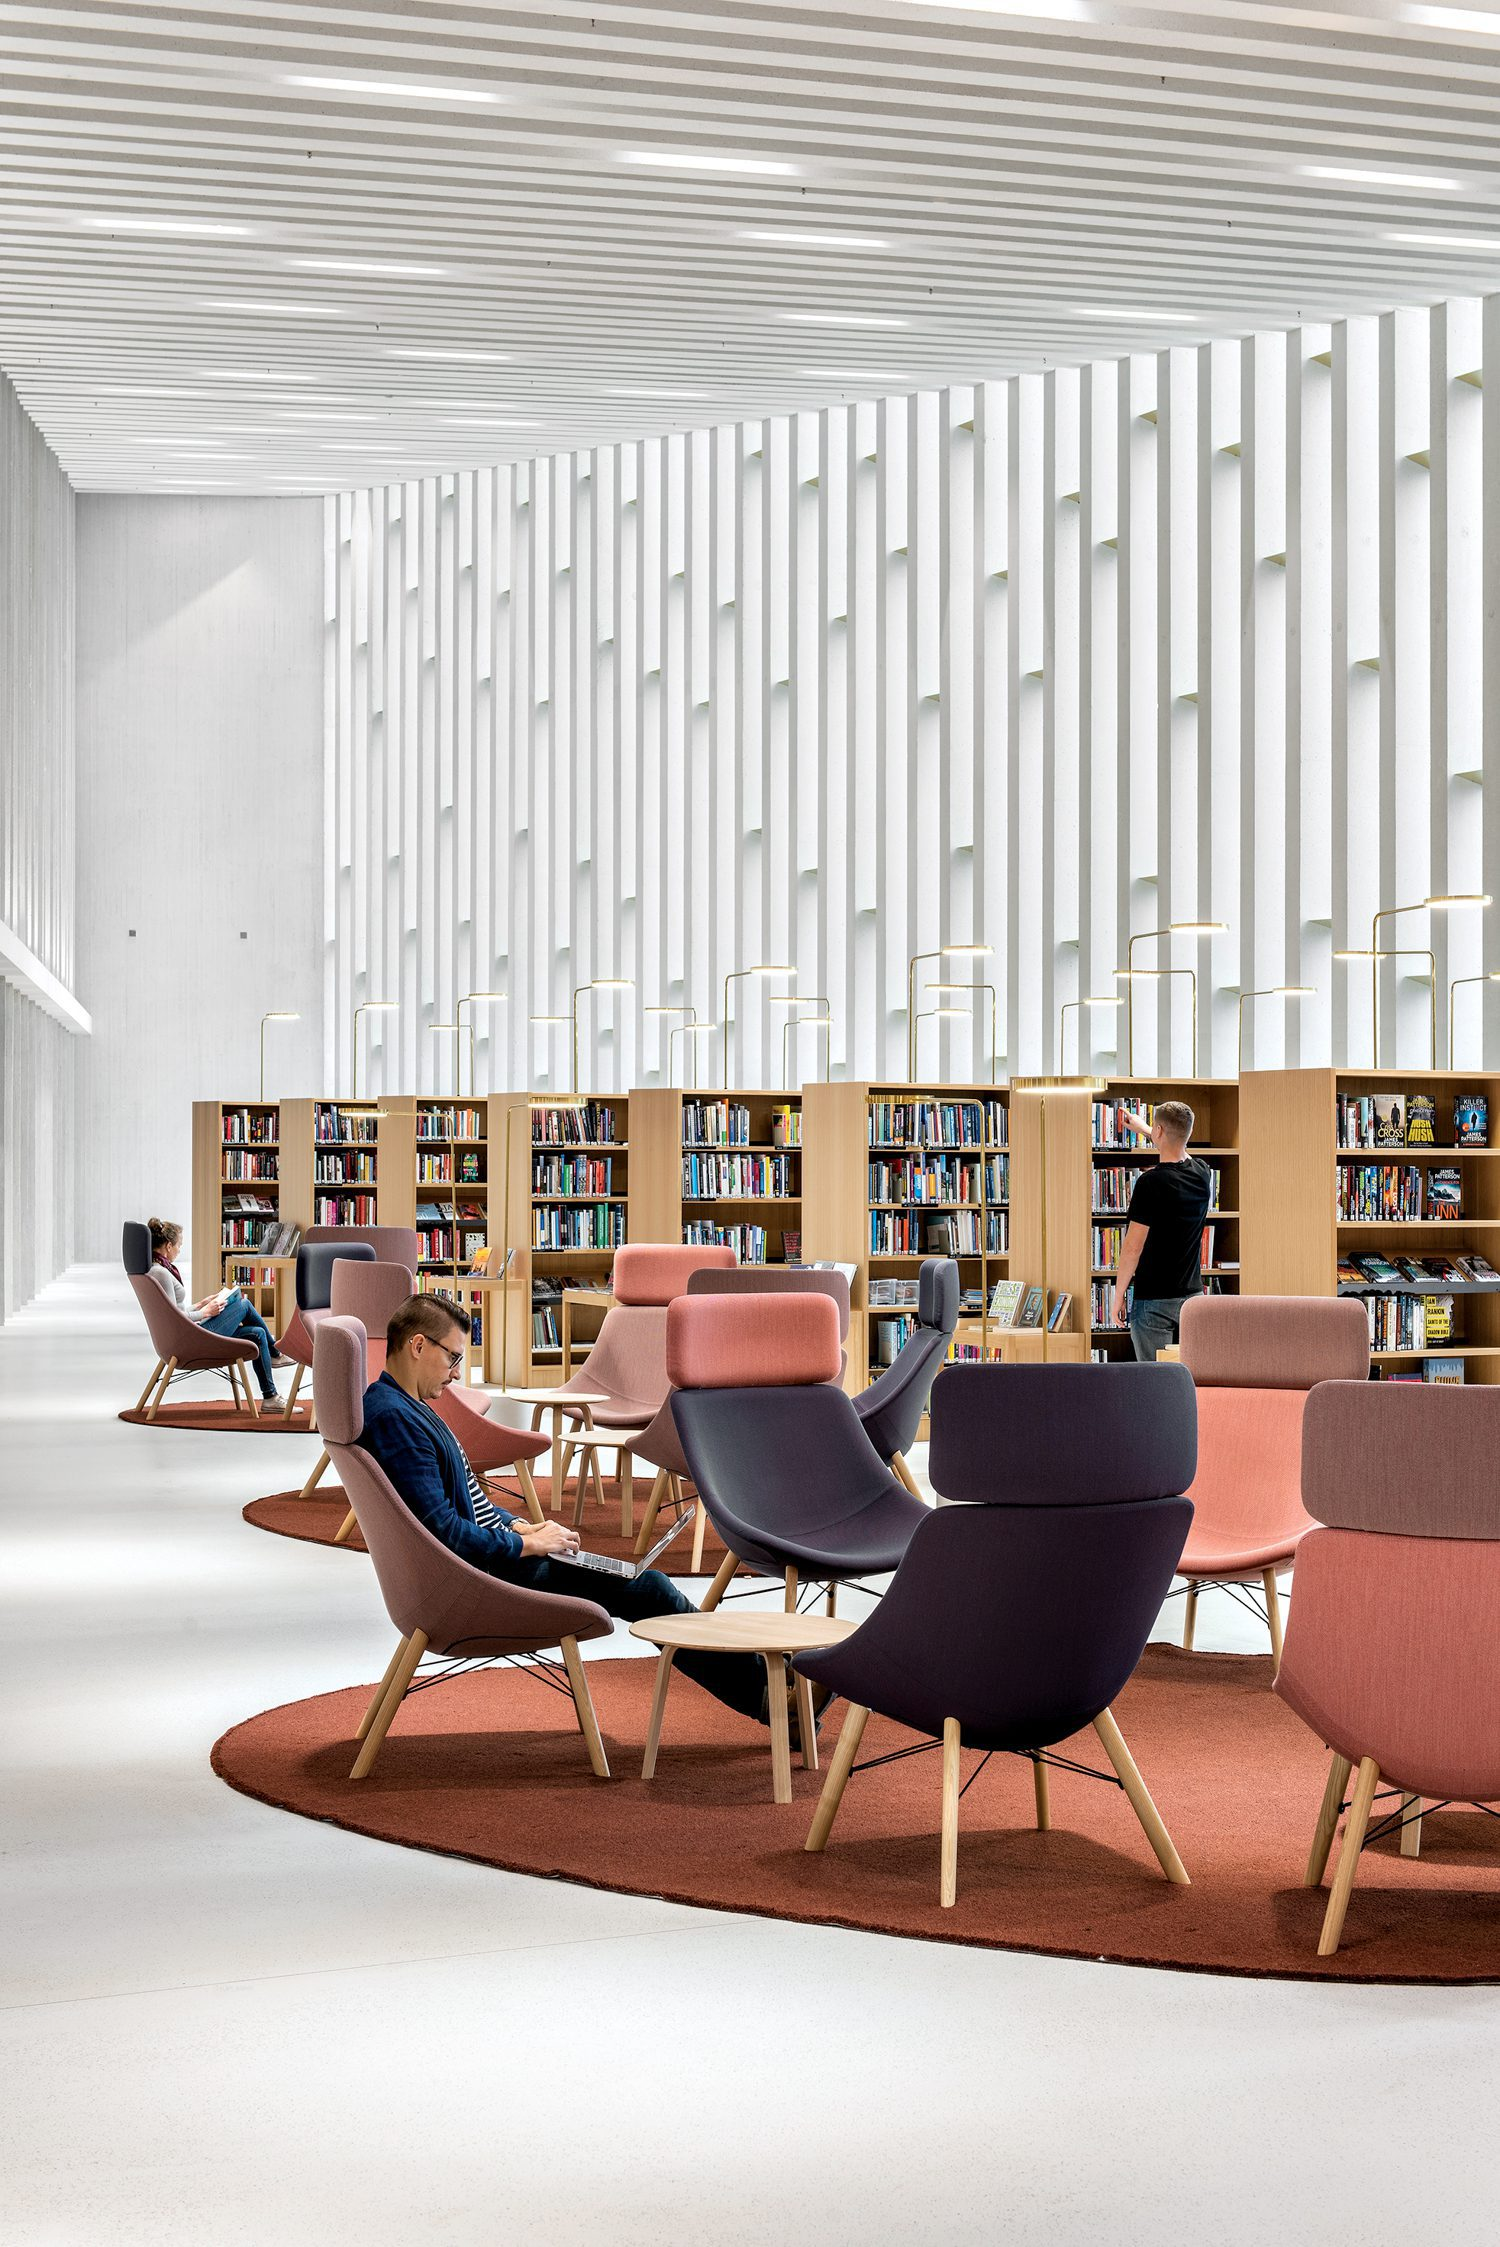 Rust colored circular rugs define seating areas among the wooden shelves filled with books.